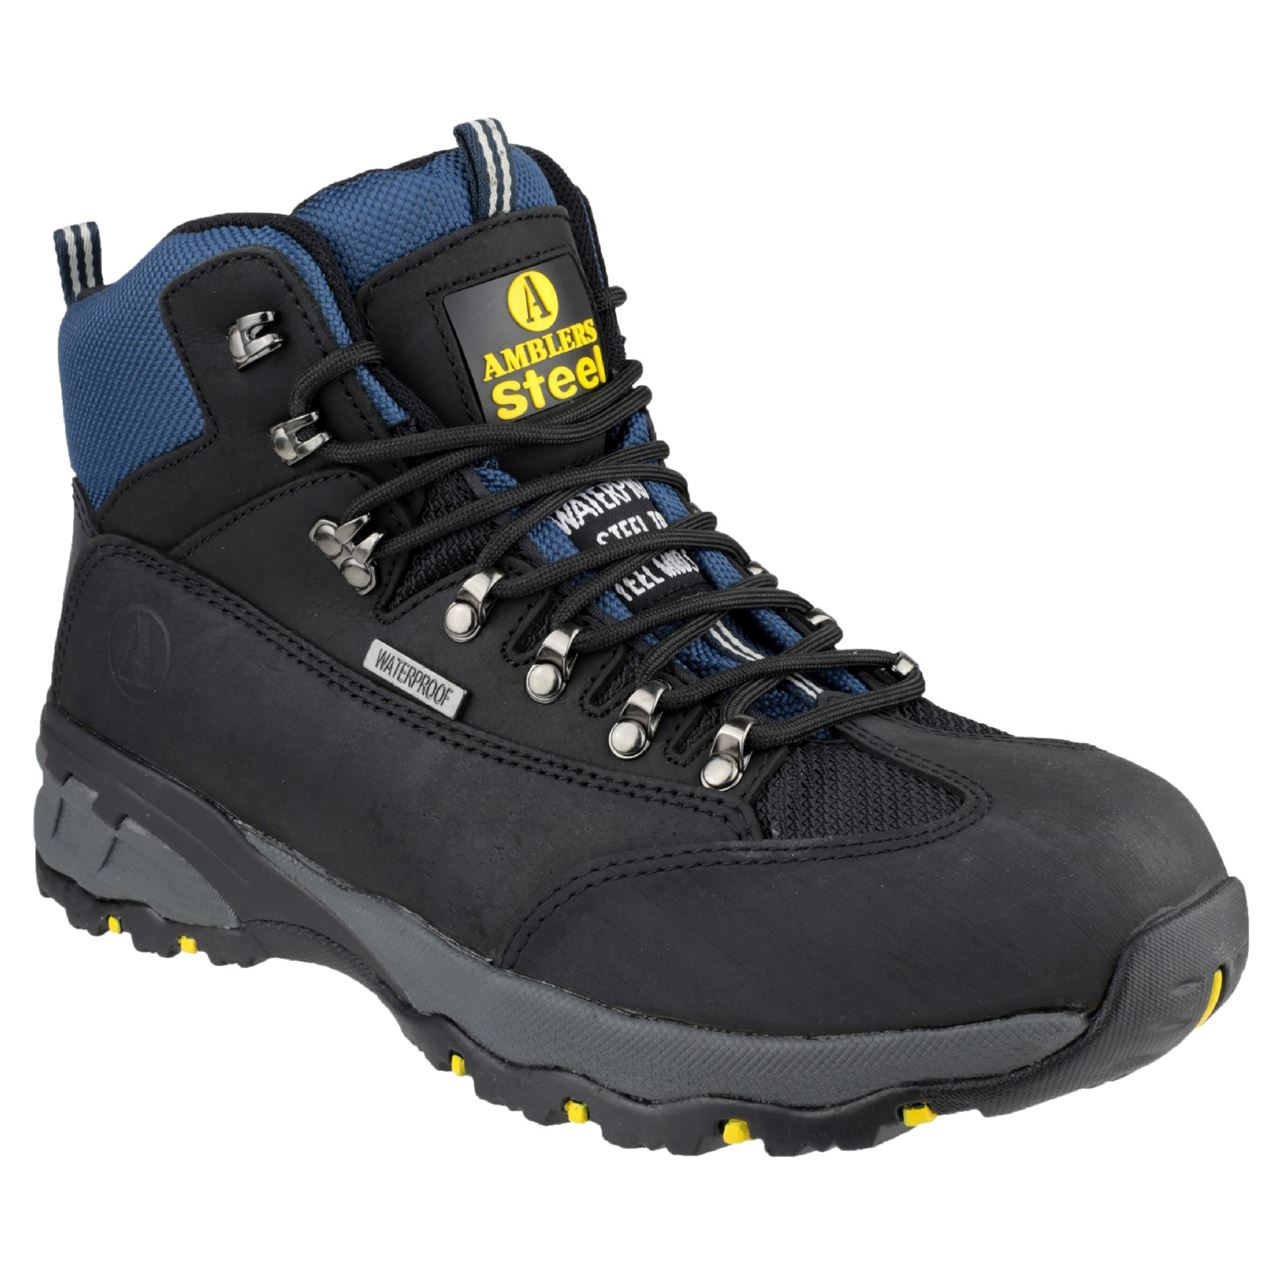 d0c6e232e29 Amblers FS161 Unisex SB Safety Waterproof Hiker Boots